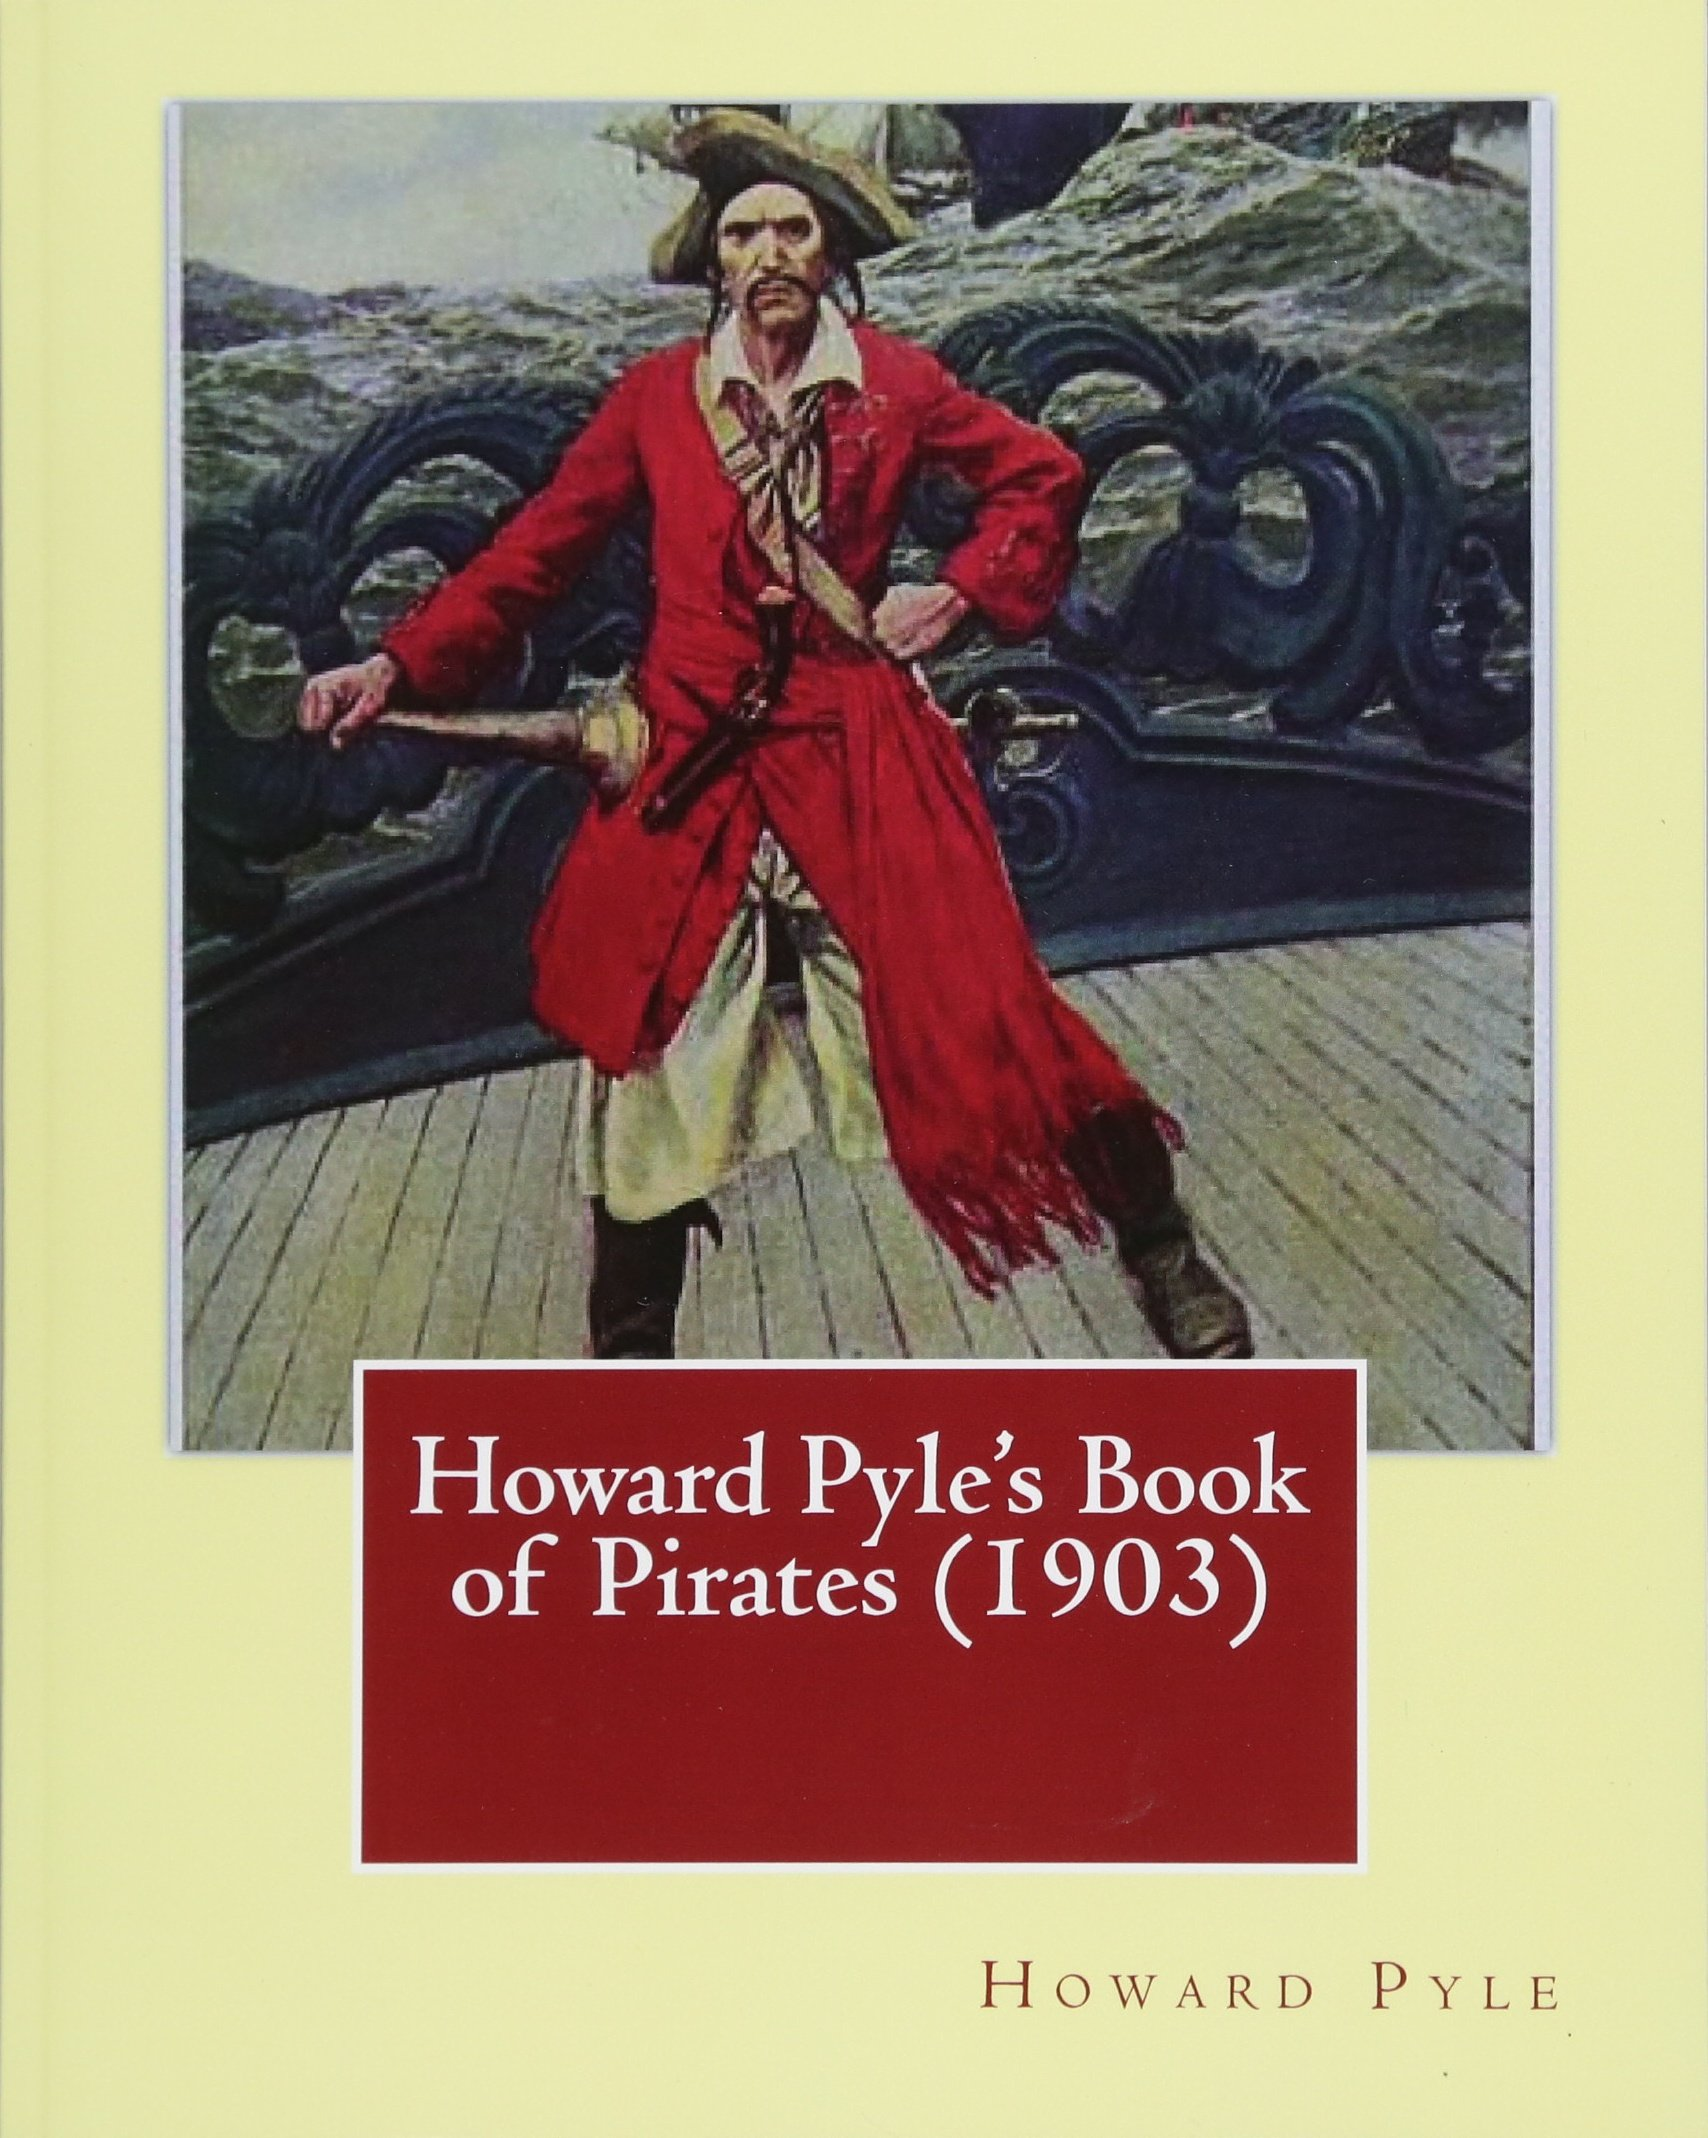 Read Online Howard Pyle's Book of Pirates (1903). By: Howard Pyle: Howard Pyle (March 5, 1853 – November 9, 1911) was an American illustrator and author, ... the last year of his life in Florence, Italy. PDF